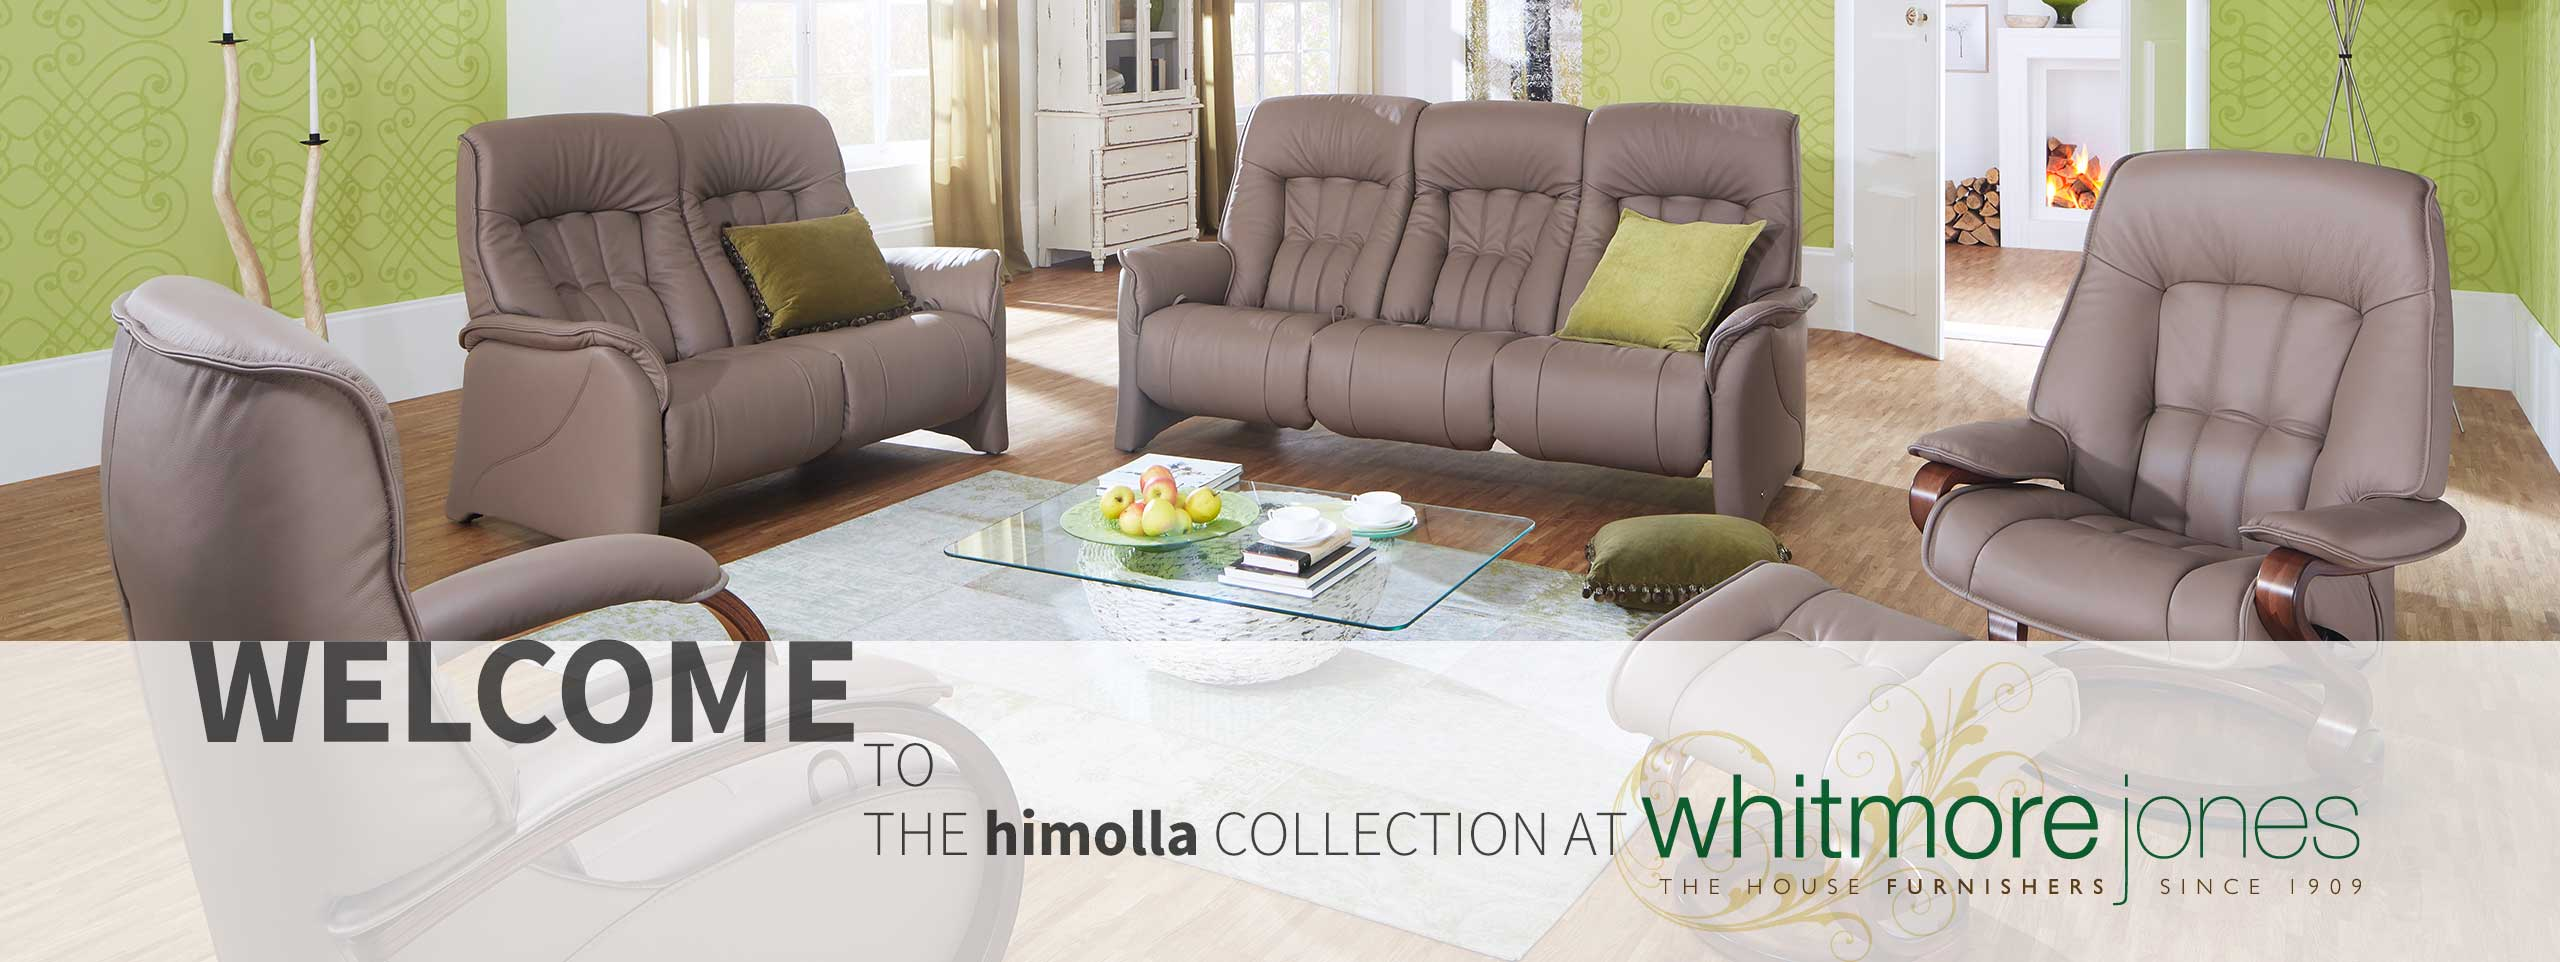 The himolla Collection from Whitmore Jones  page banner.